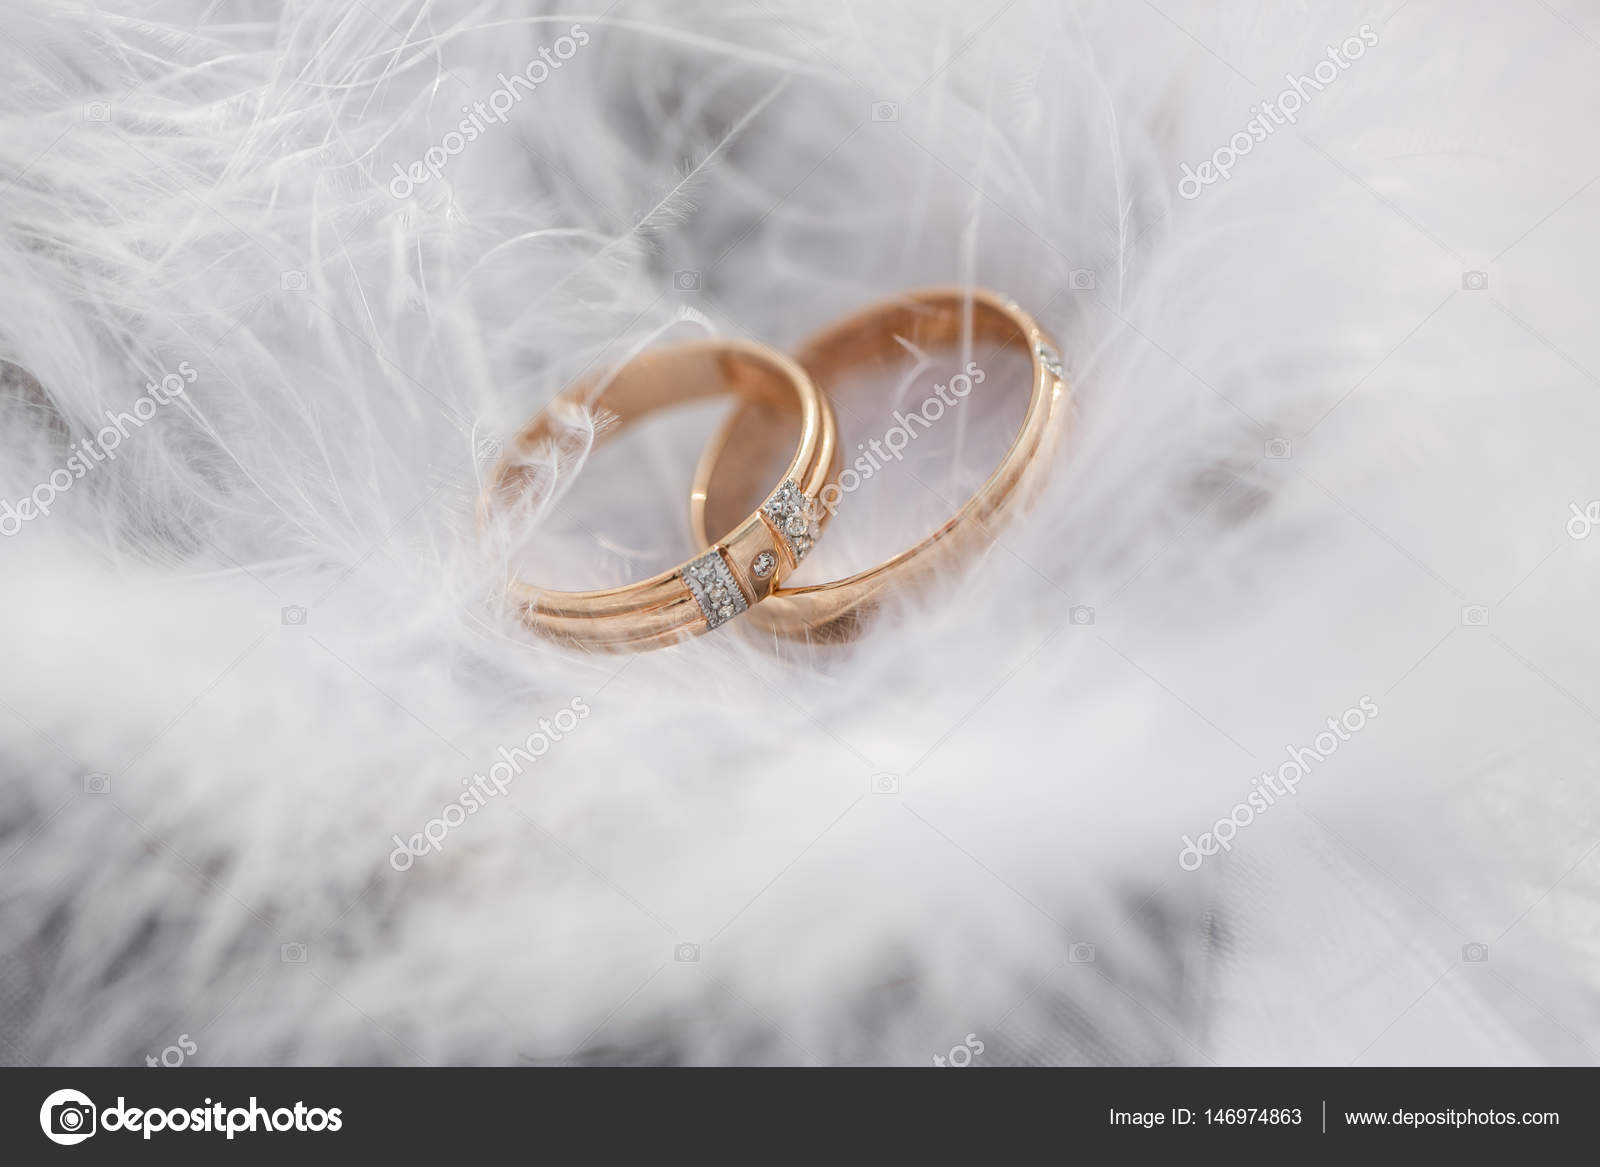 image angelic photo two light and edit card background stock golden feather soft gentle now wedding sparkling rings